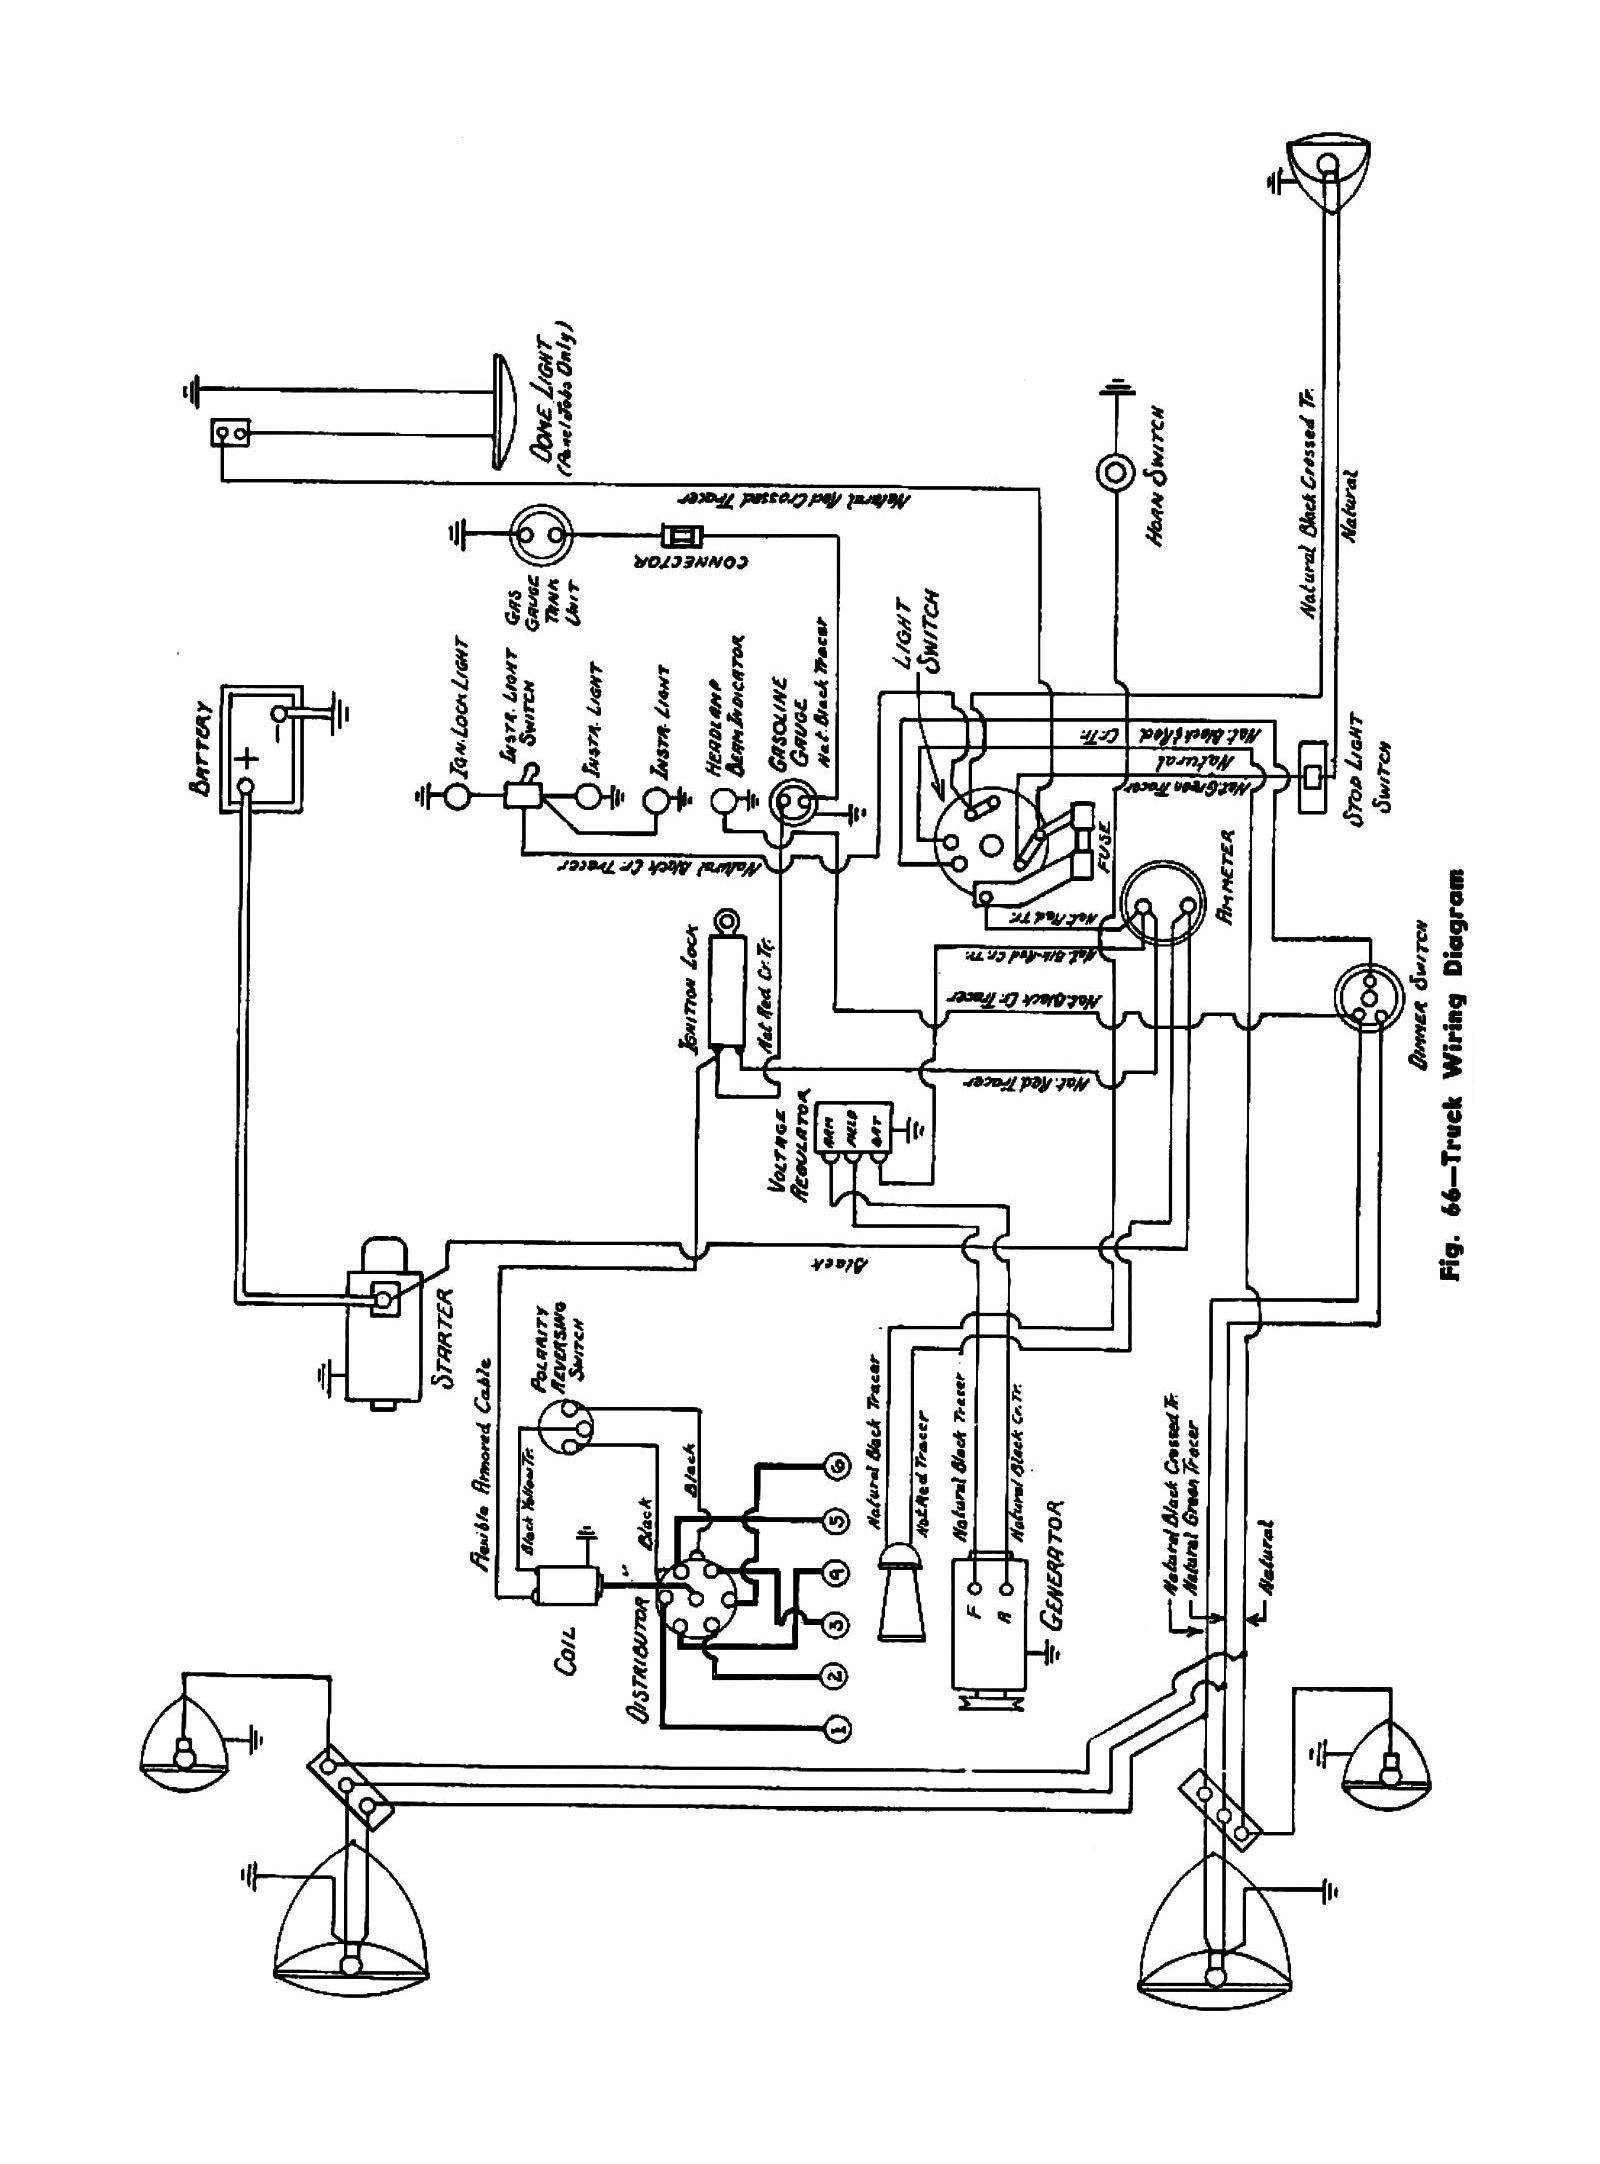 1976 Dodge Truck Wiring Harness Wiring Library